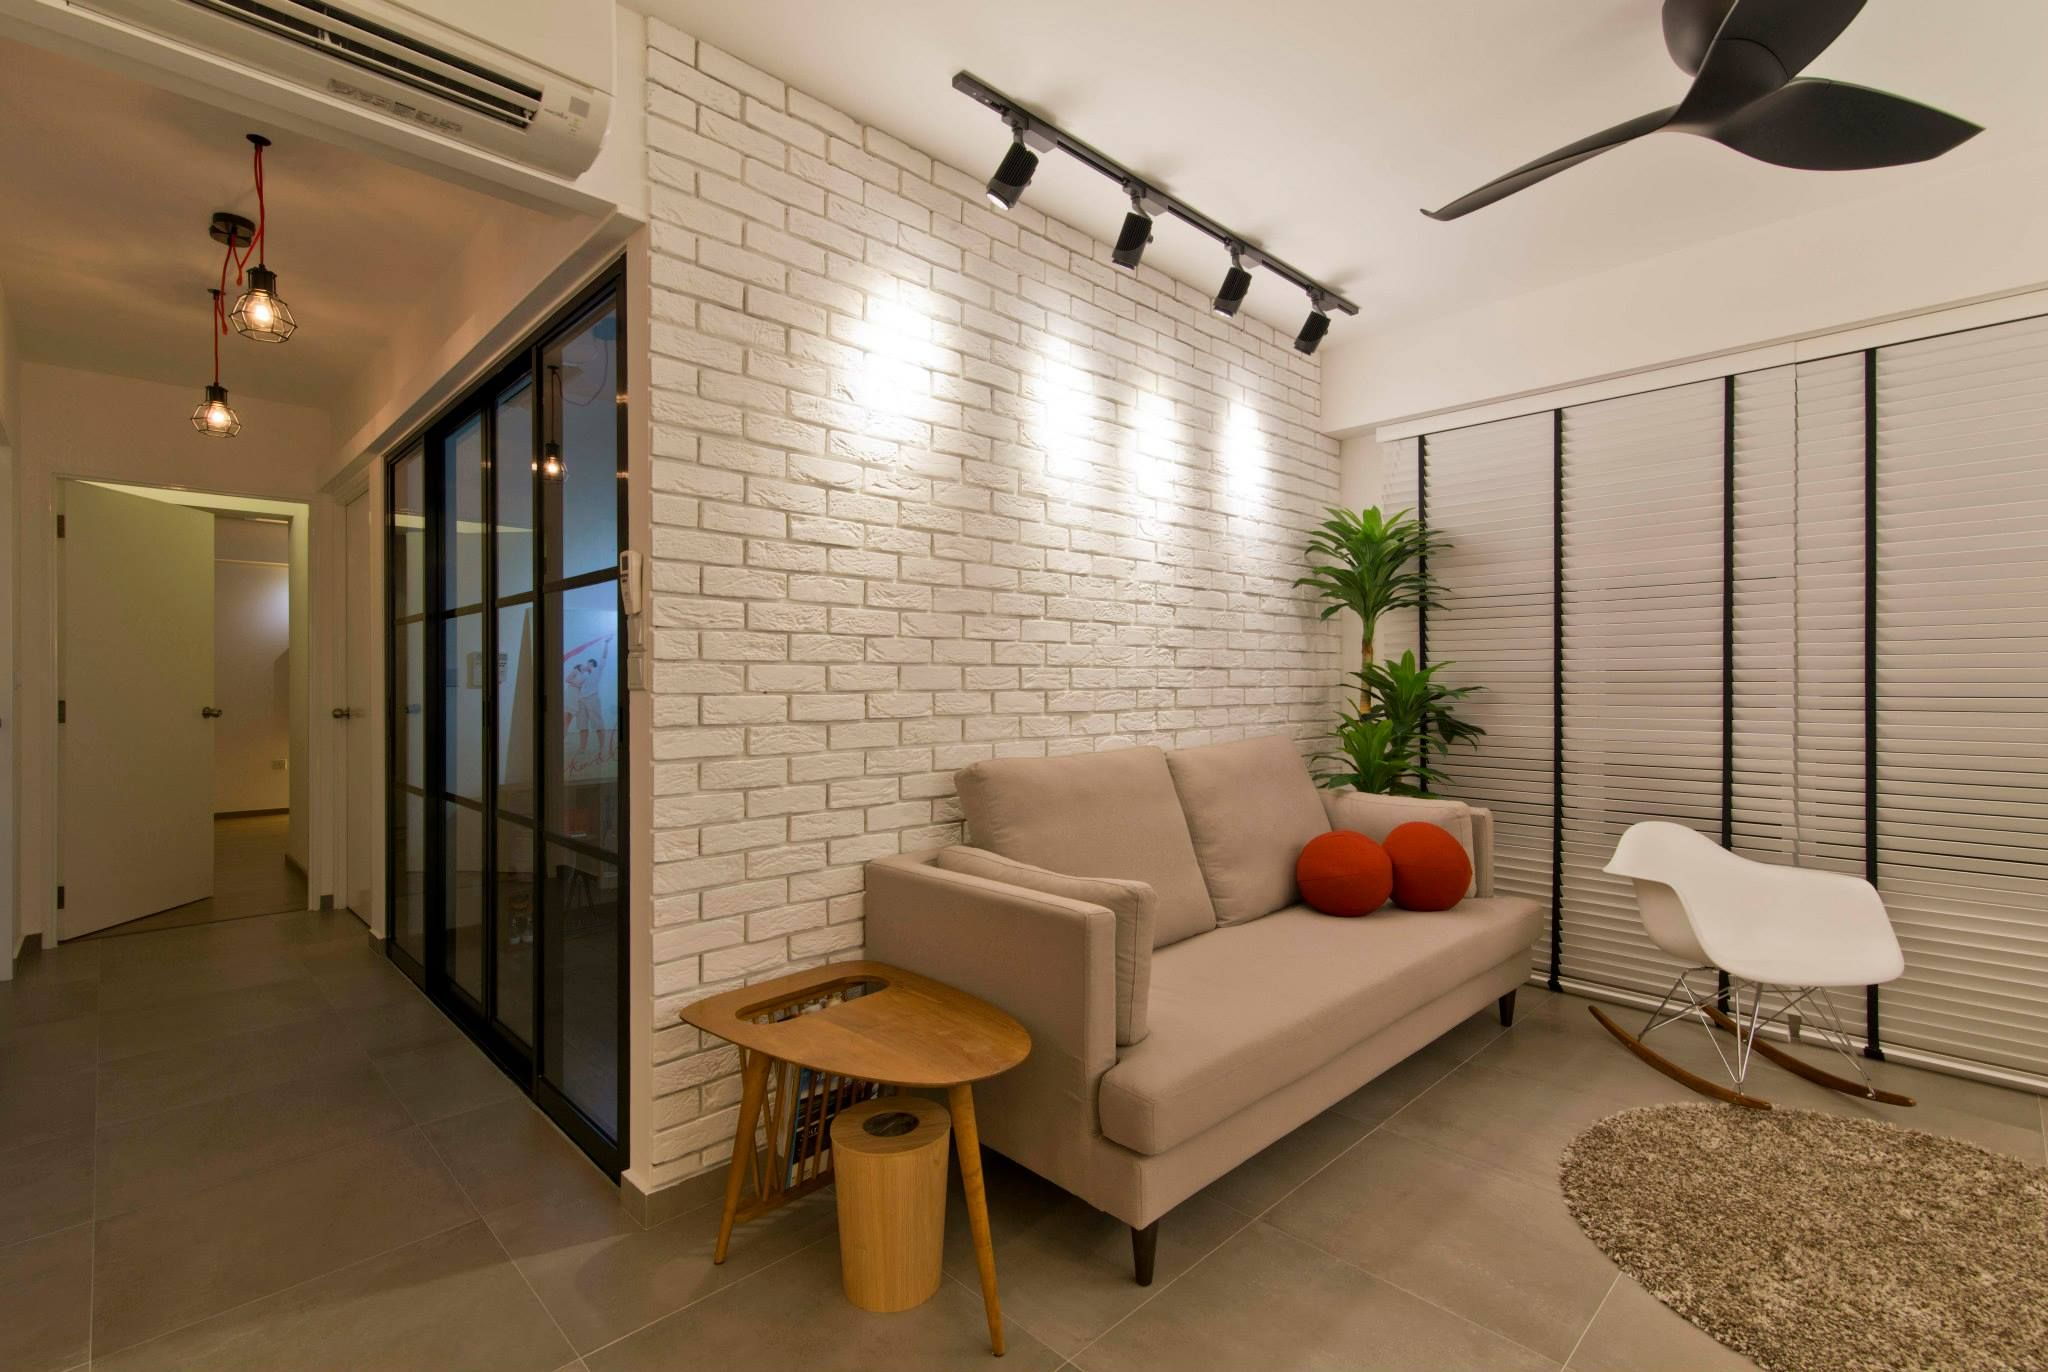 Pin On Hdb Decor Concepts